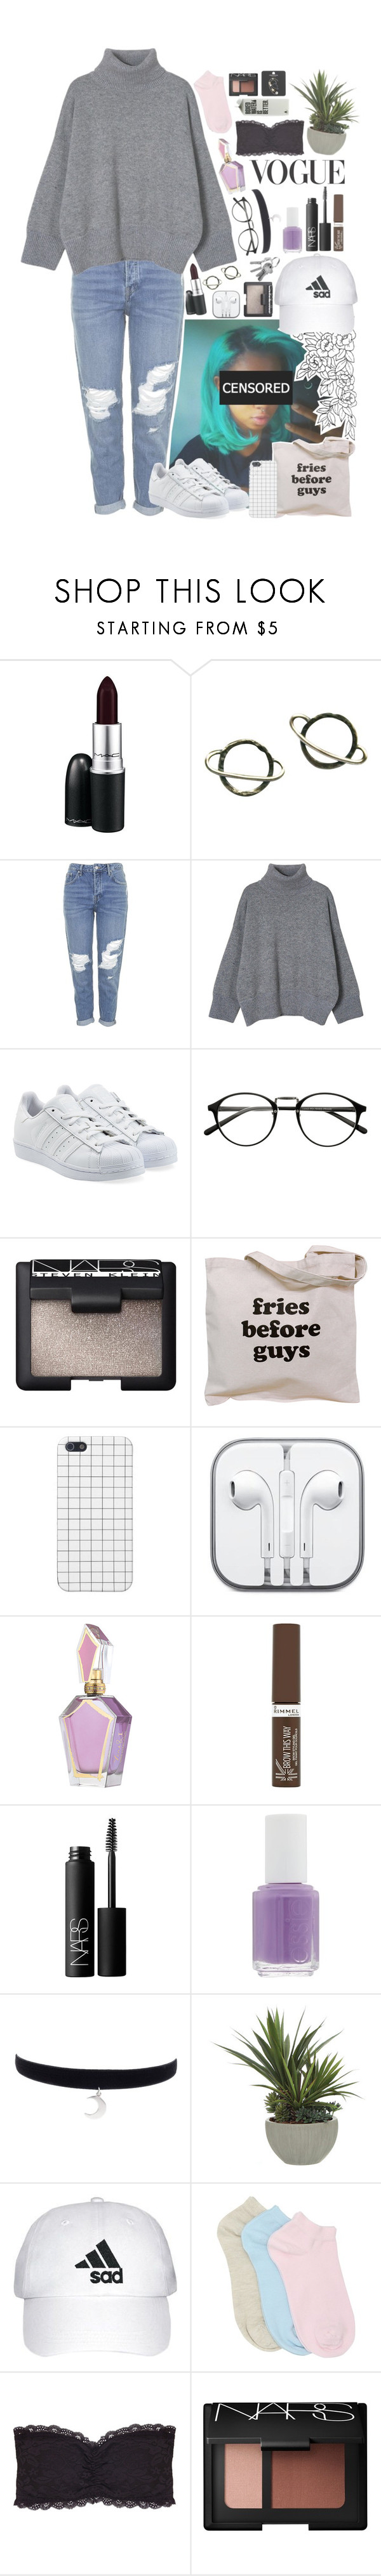 """""""Untitled #206"""" by rosita562 ❤ liked on Polyvore featuring MAC Cosmetics, Stefanie Sheehan Jewelry, Topshop, adidas Originals, NARS Cosmetics, CO, Rimmel, Essie, Lux-Art Silks and M&Co"""